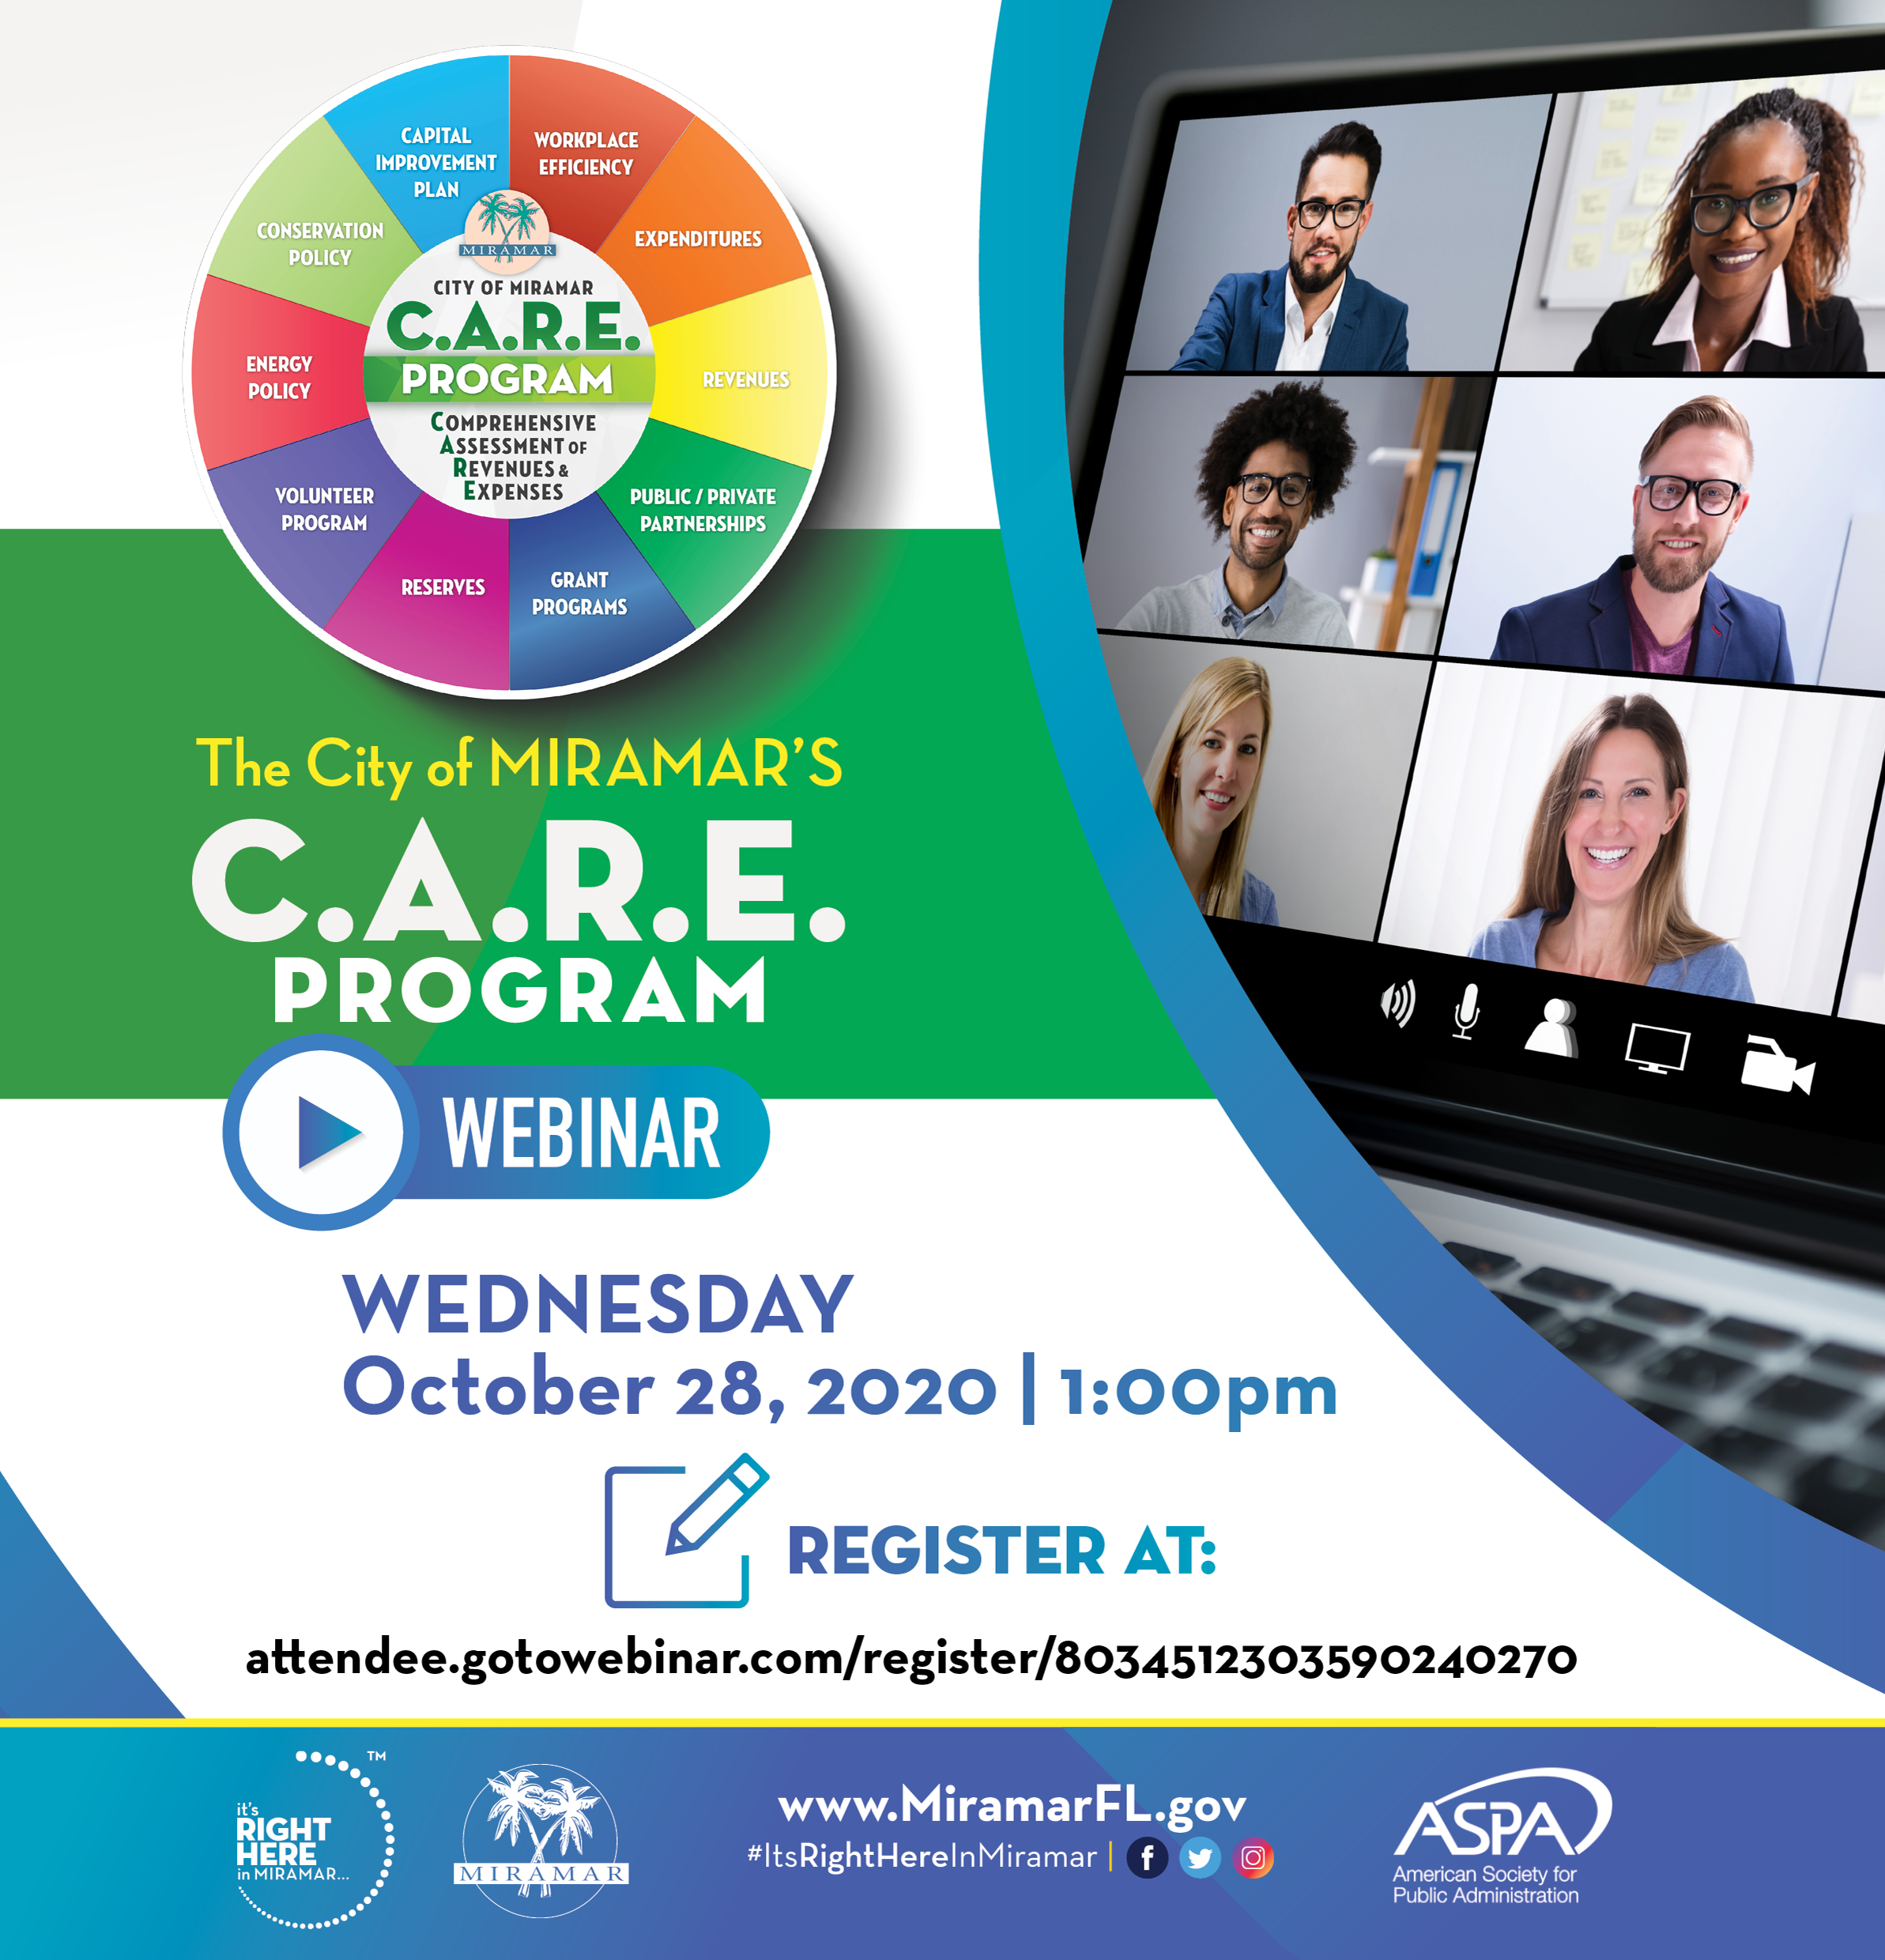 C.A.R.E. Program Webinar Scheduled for October 28 2020 - Home Page Banner